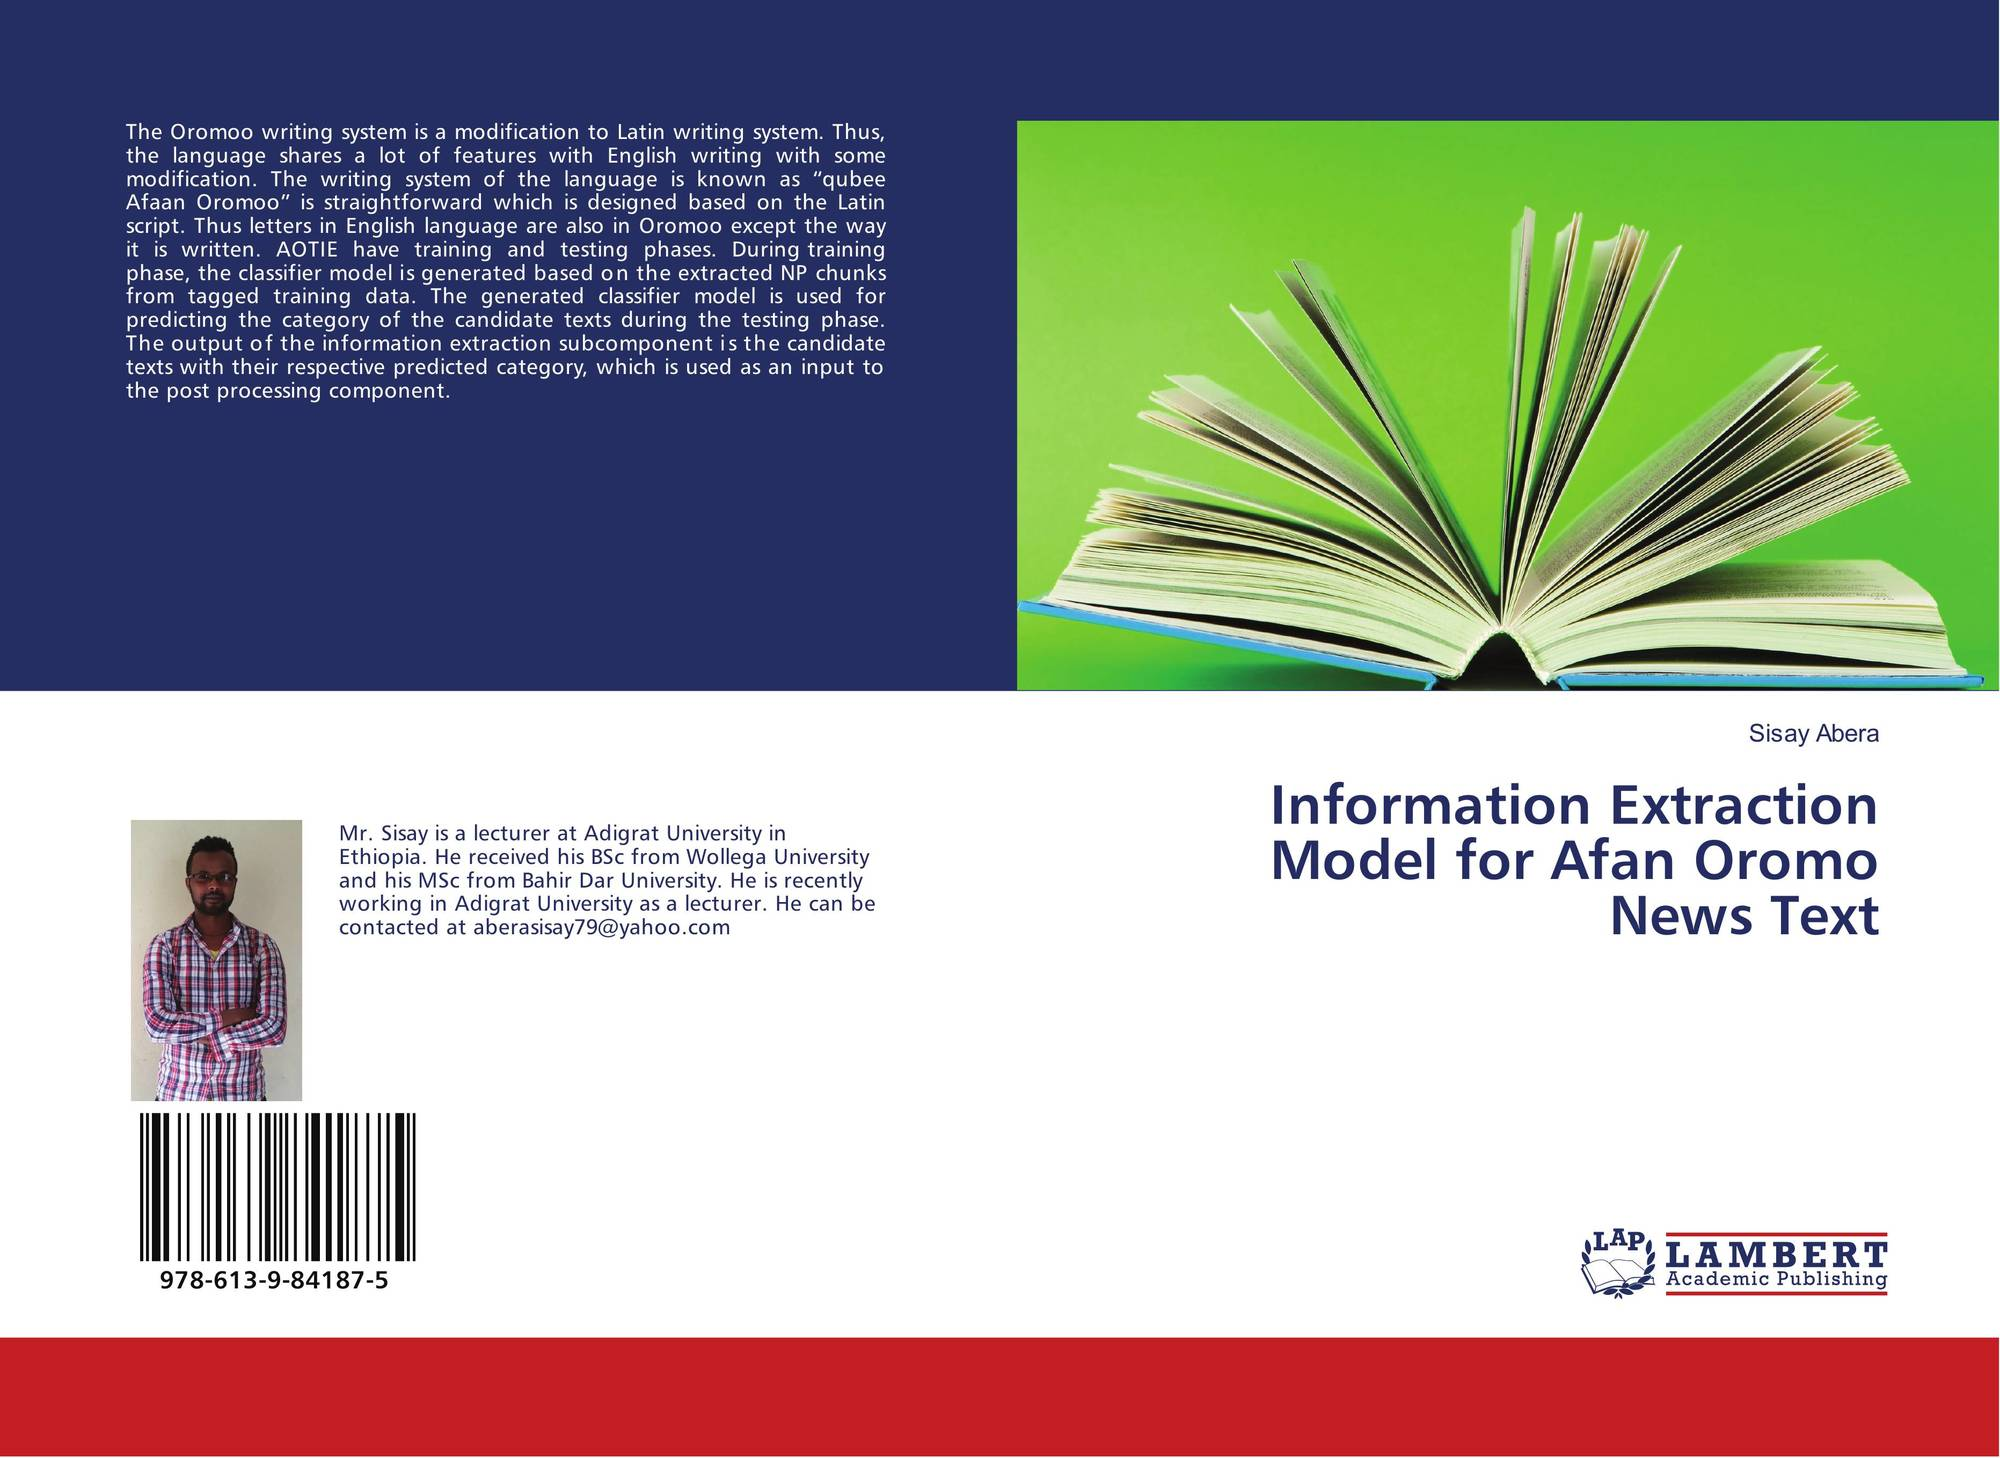 Information Extraction Model for Afan Oromo News Text, 978-613-9